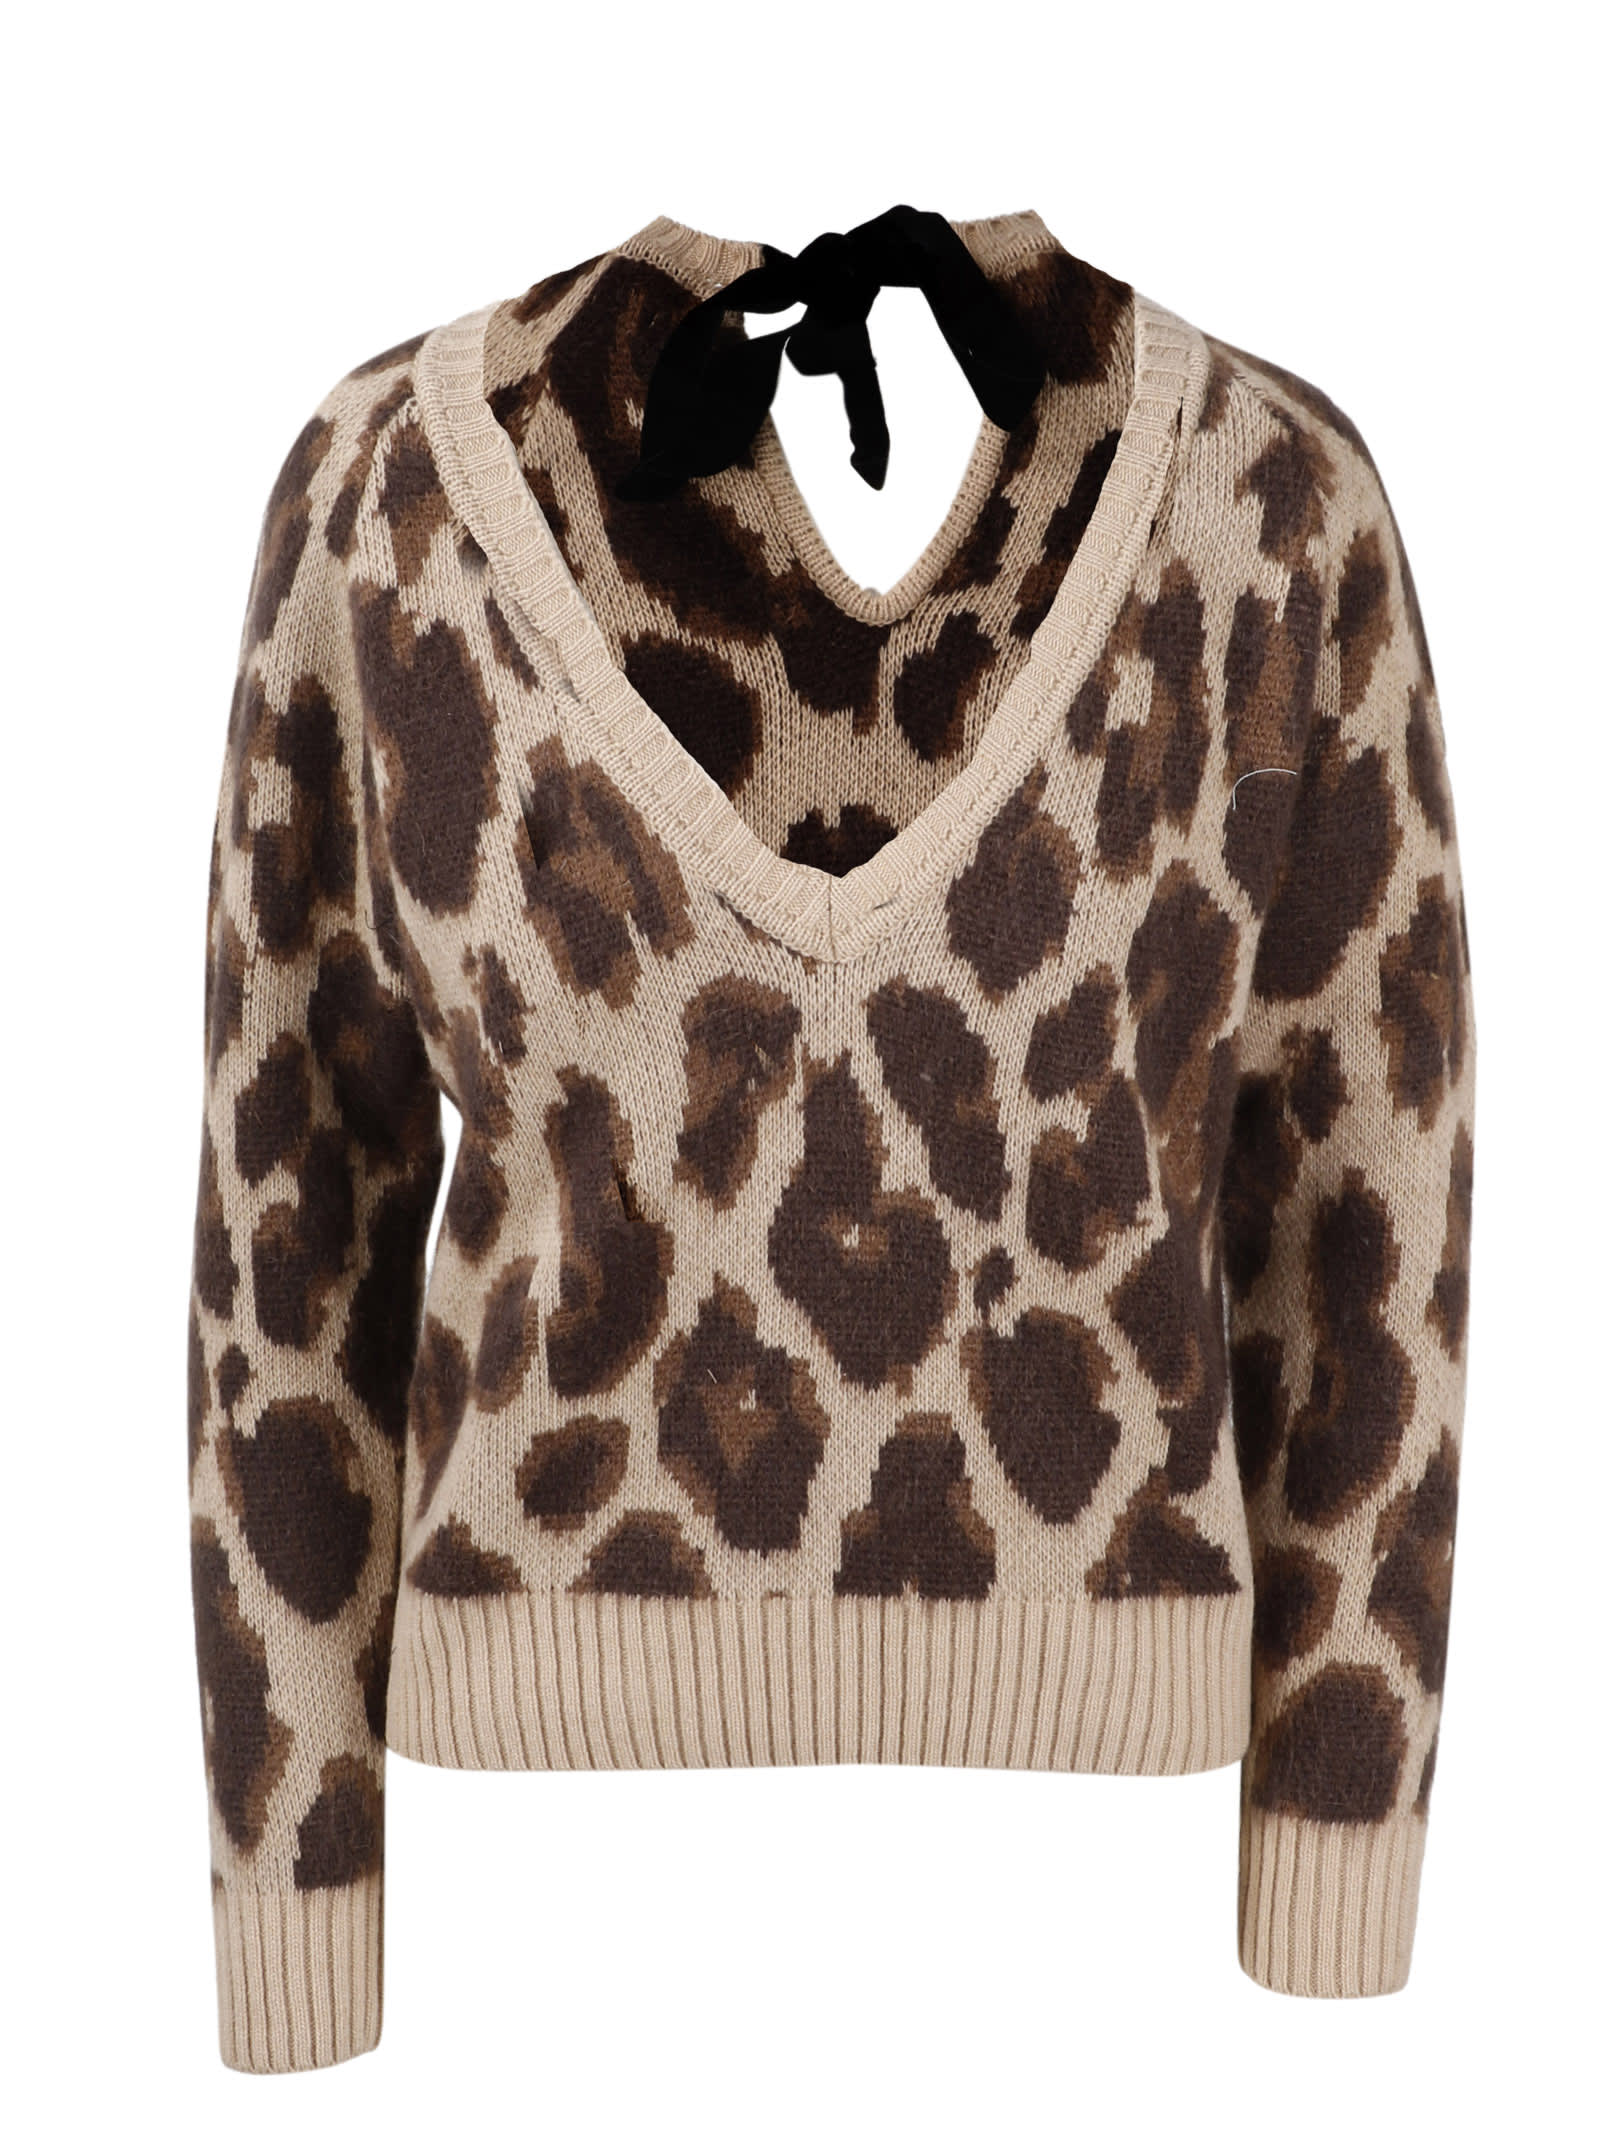 Spotted Jacquard Pullover